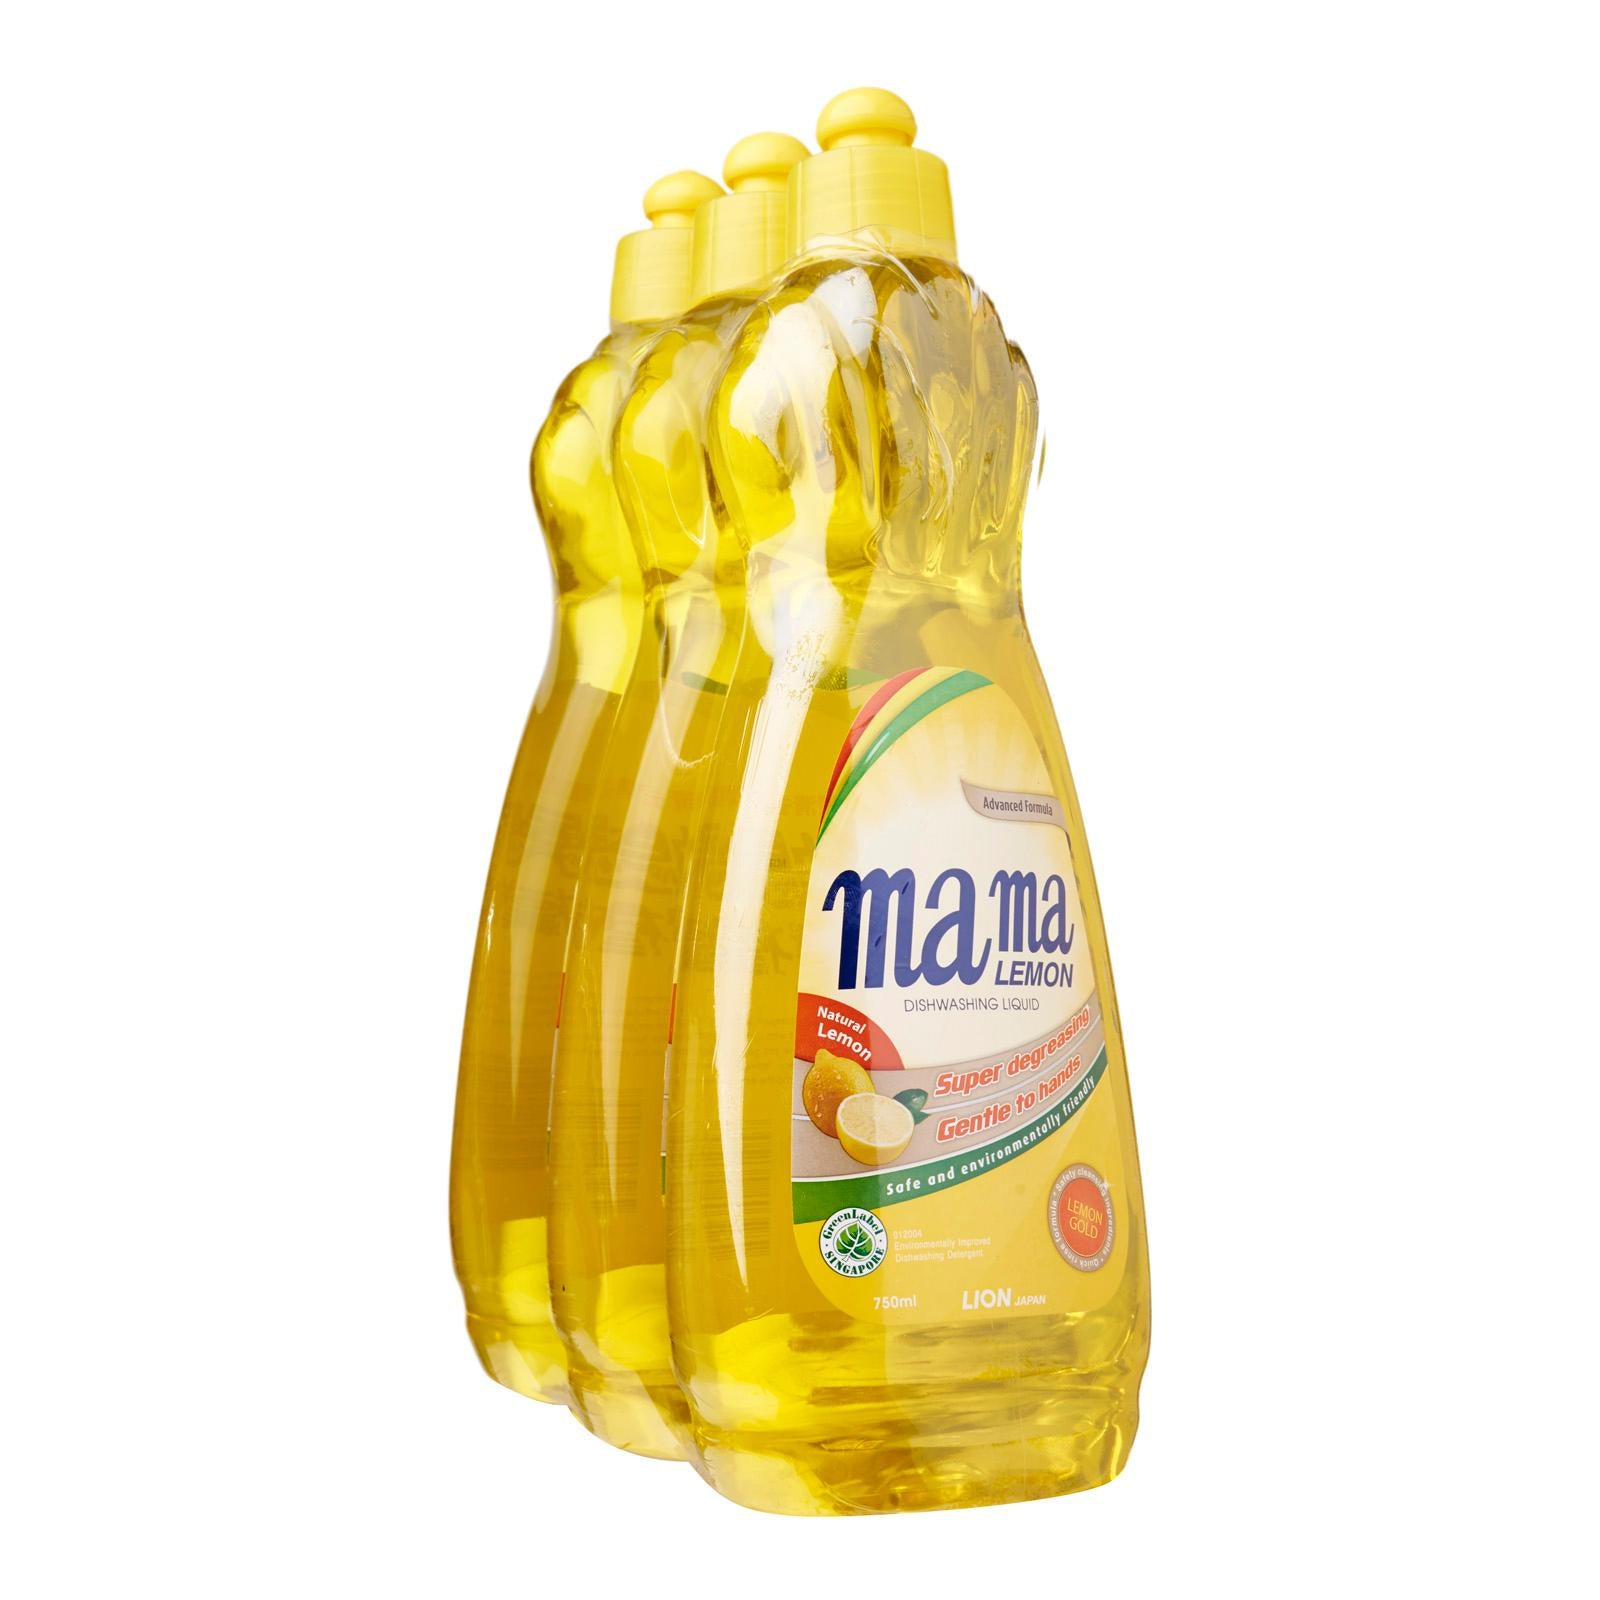 Mama Lemon Dishwashing Liquid Lemon Gold 3 x 750 ml